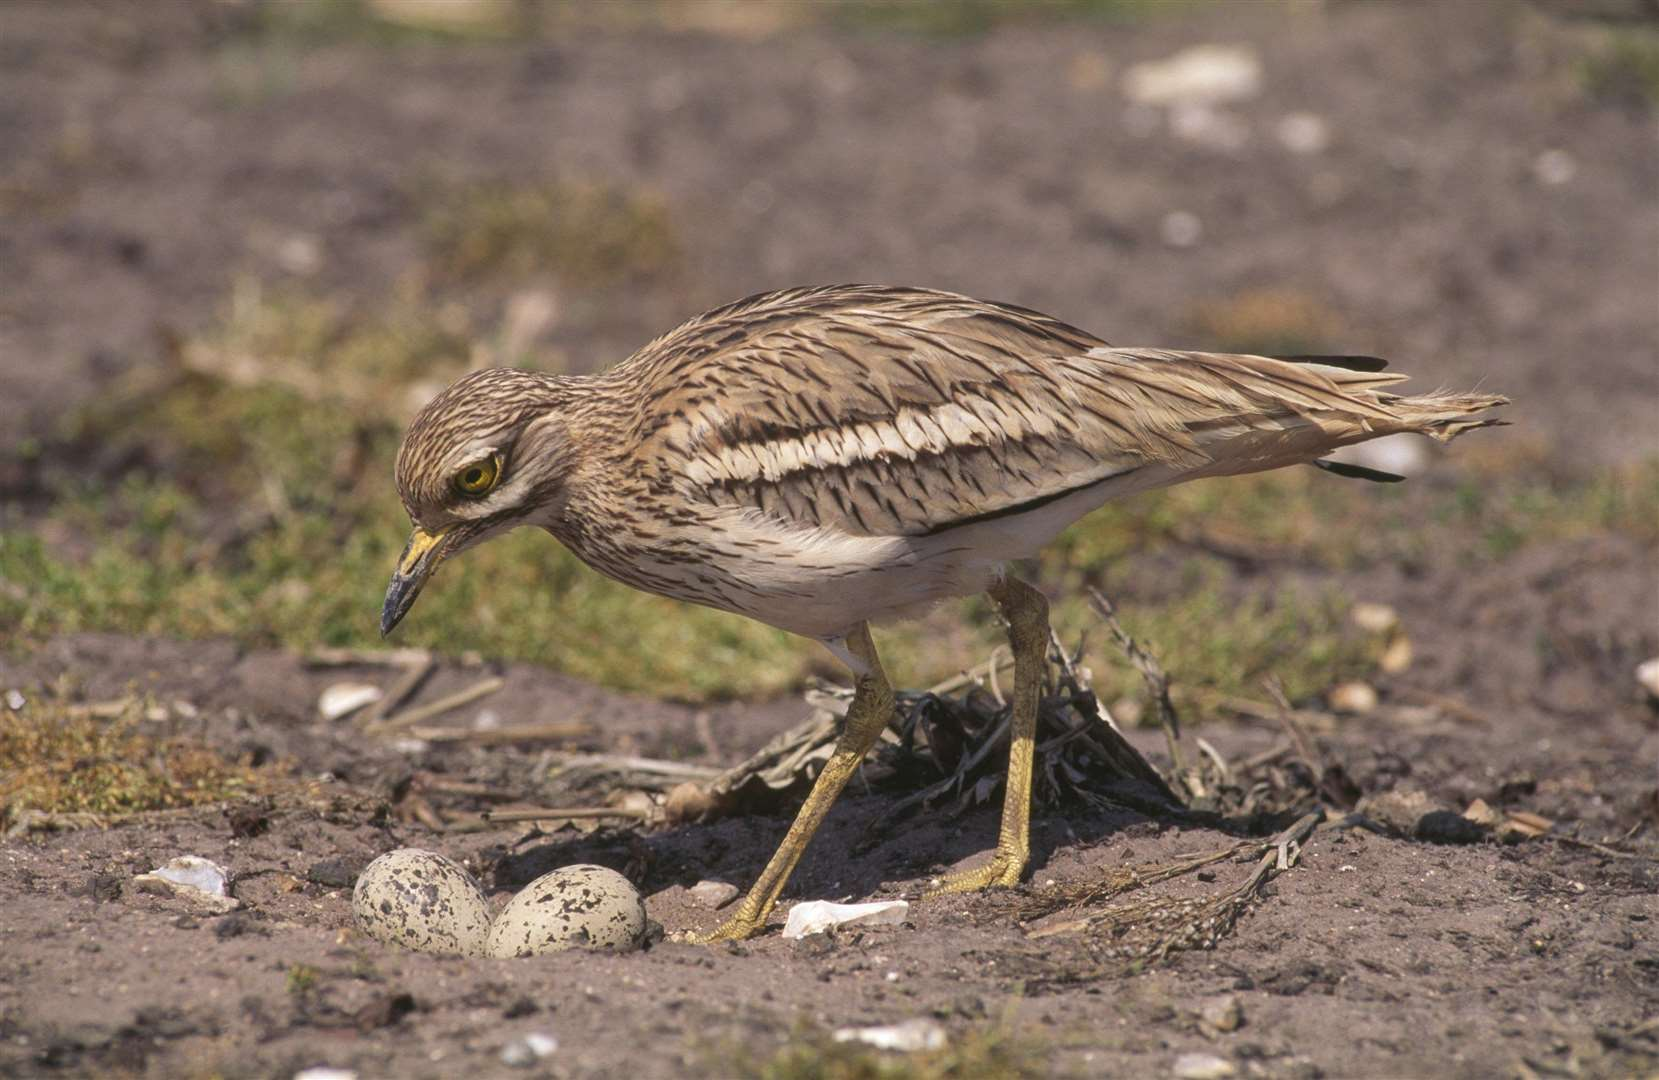 Stone curlew adult near nest and eggs, Breckland, Norfolk. Picture: Chris Gomersall RSPB (1975143)